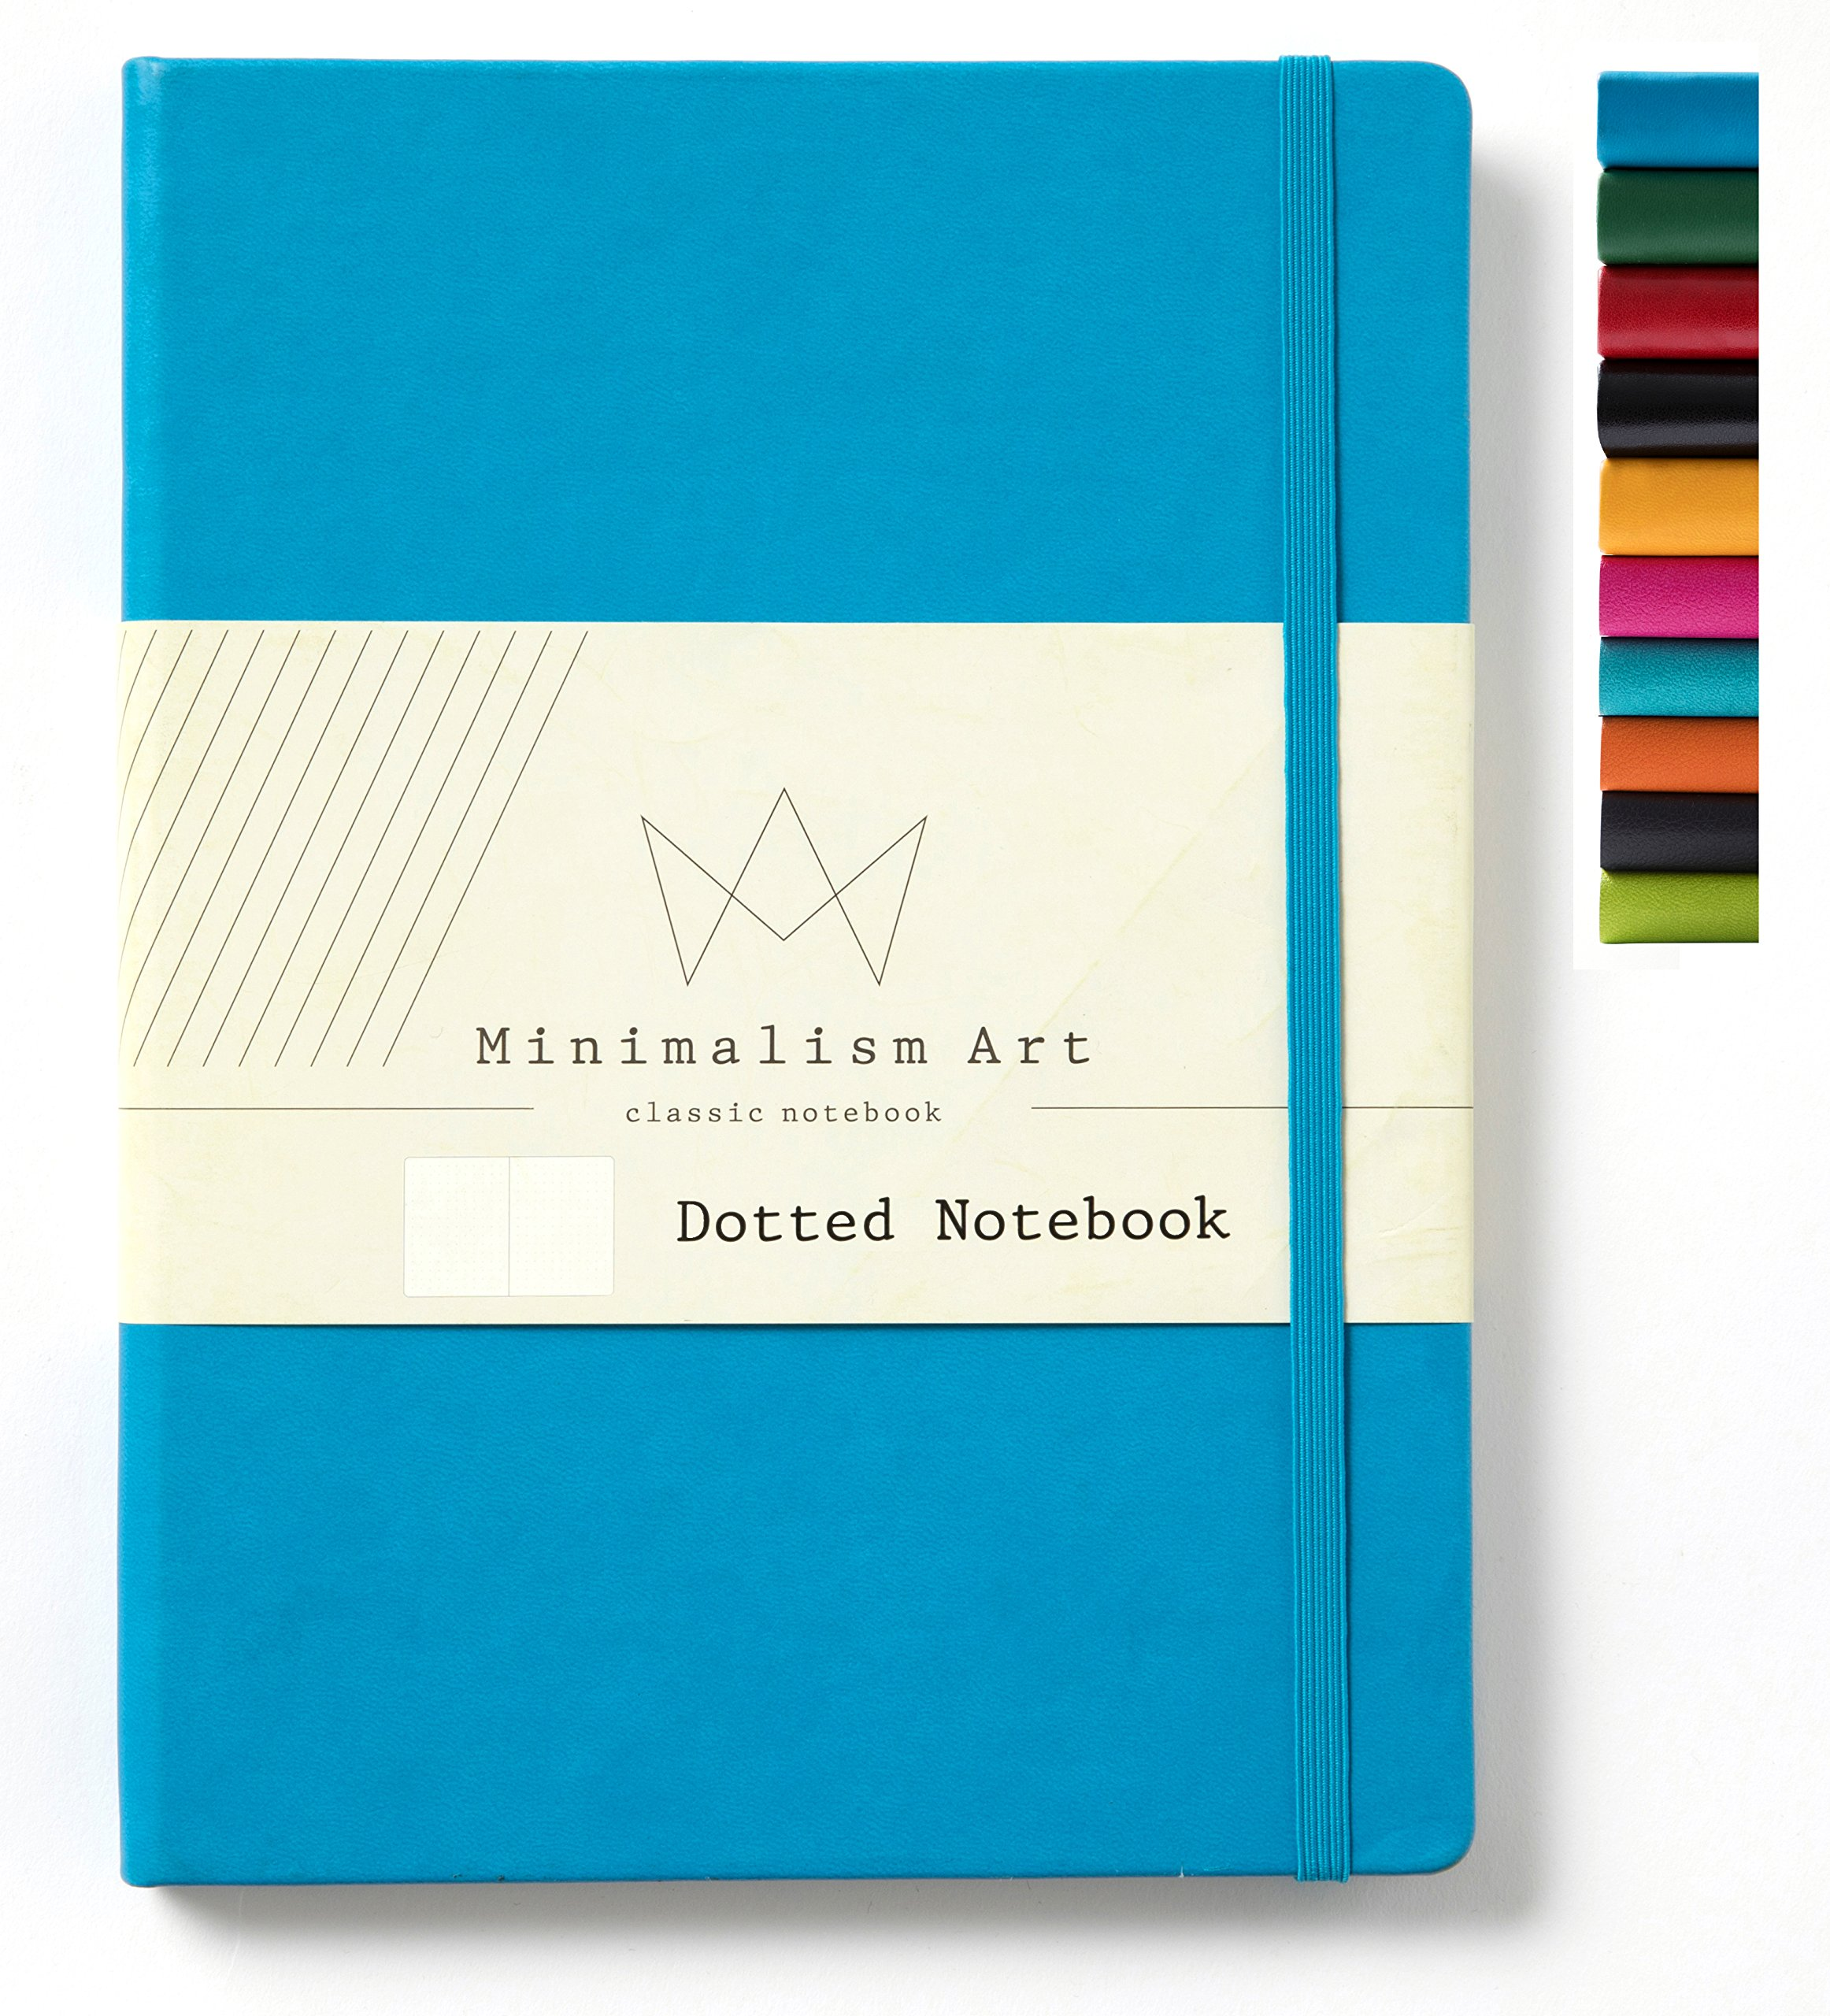 Minimalism Art | Classic Notebook Journal, Size:5.8''X8.3'', A5, Blue, Dotted Grid Page, 240 Pages, Hard Cover/Fine PU Leather, Inner Pocket, Quality Paper - 80gsm | Designed in San Francisco